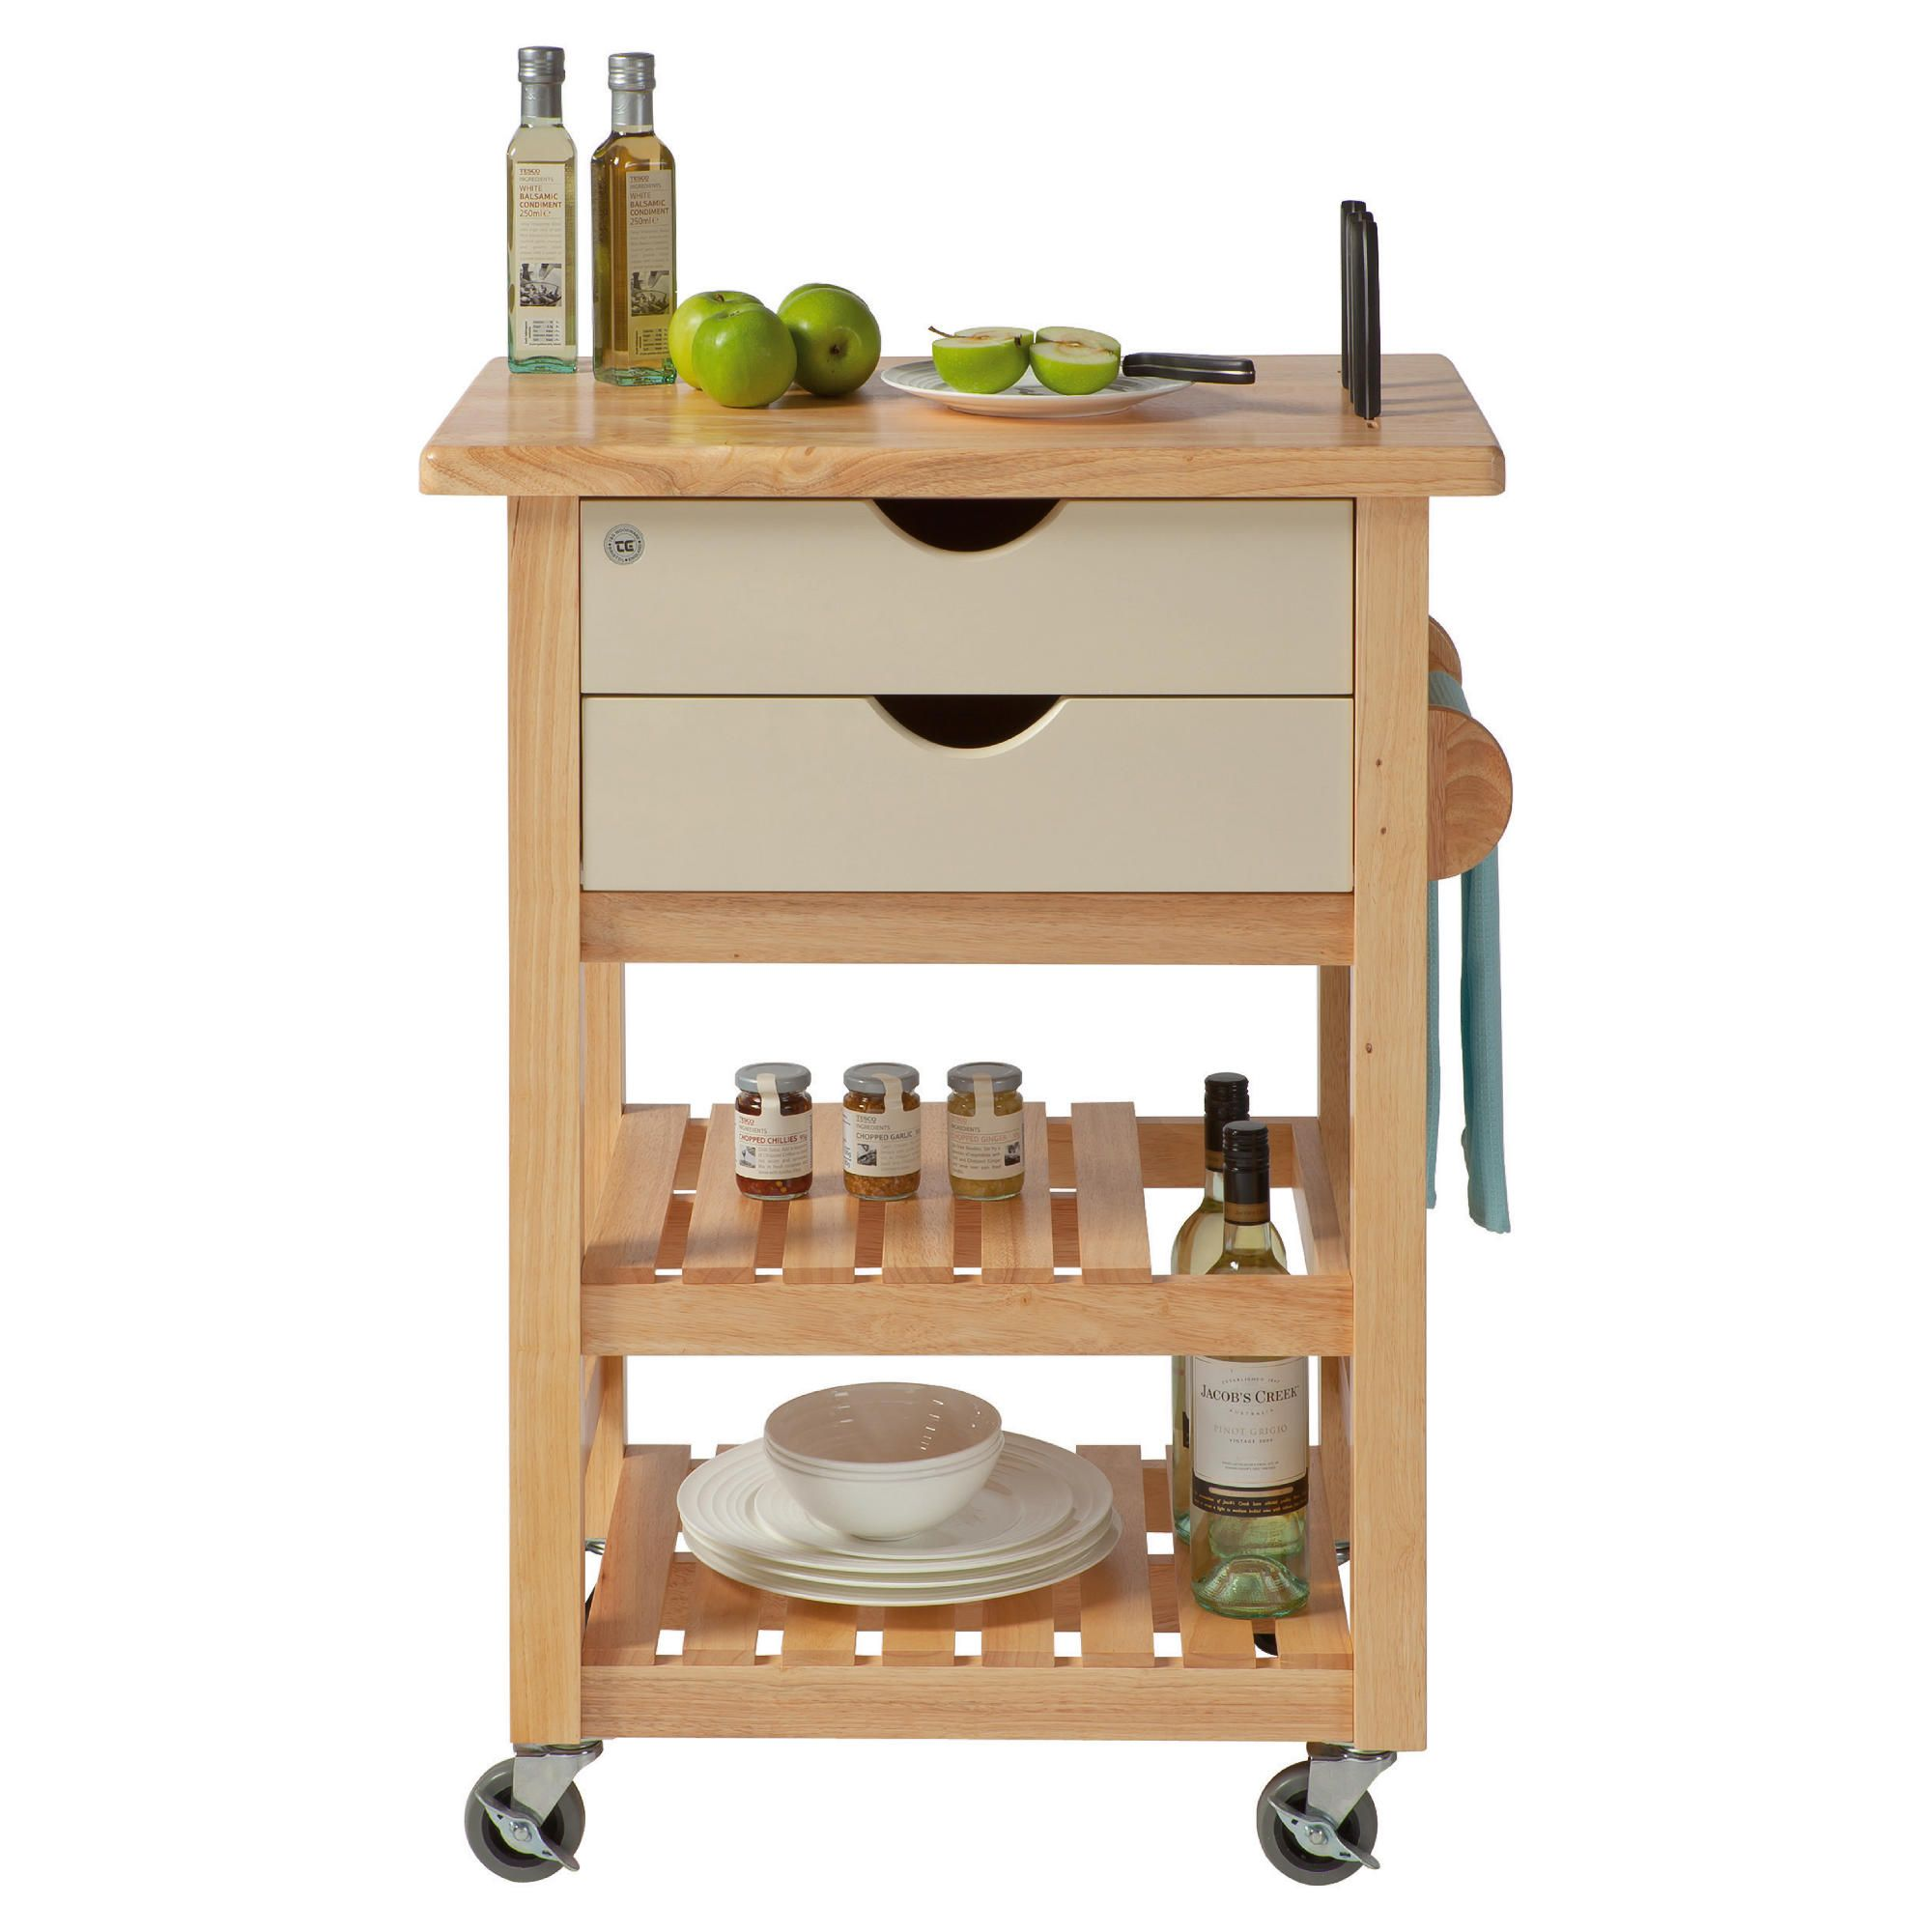 T&G Woodware Ltd Ashton Cream Trolley in Natural Hevea at Tesco Direct